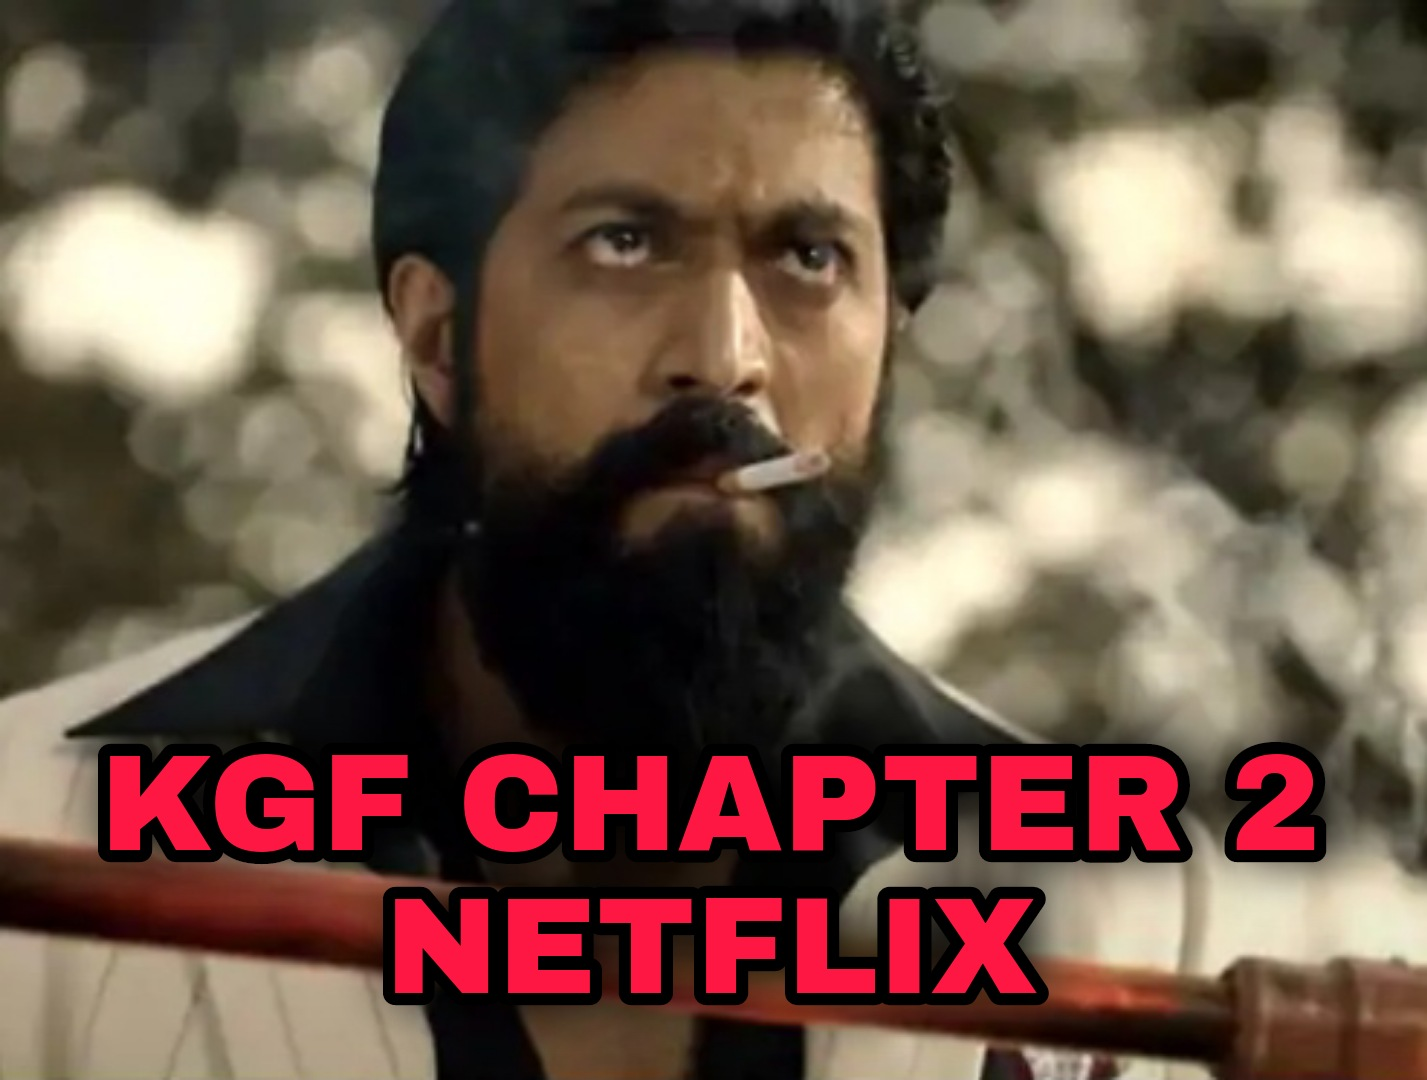 Does Netflix have KGF chapter 2